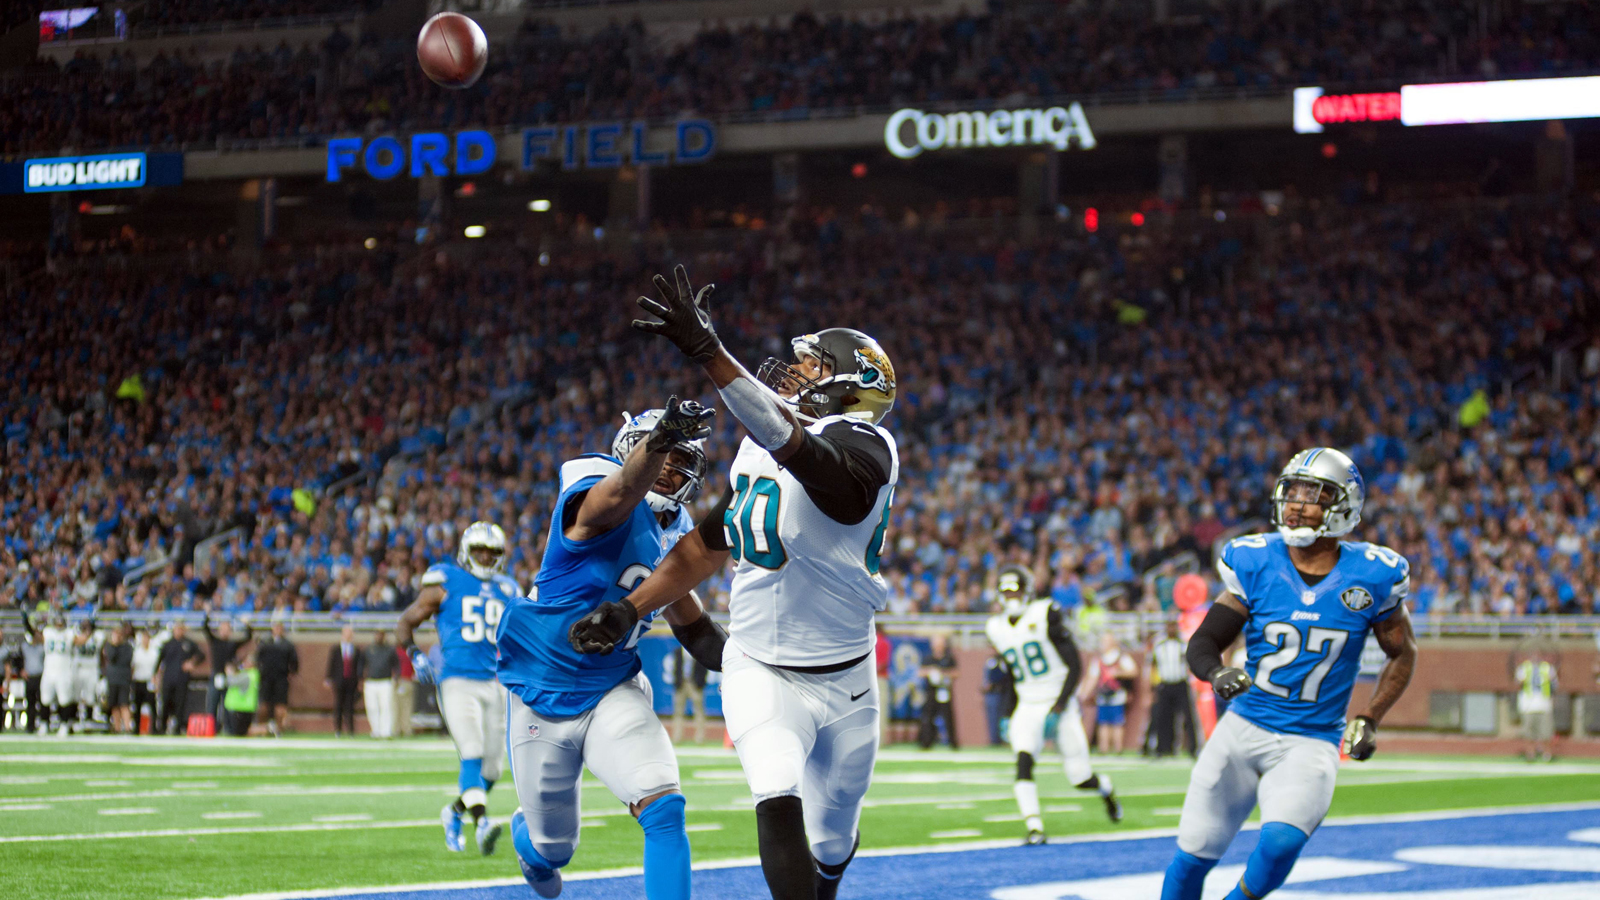 Jaguars' woes continue, slump hits 5 straight with loss to Lions